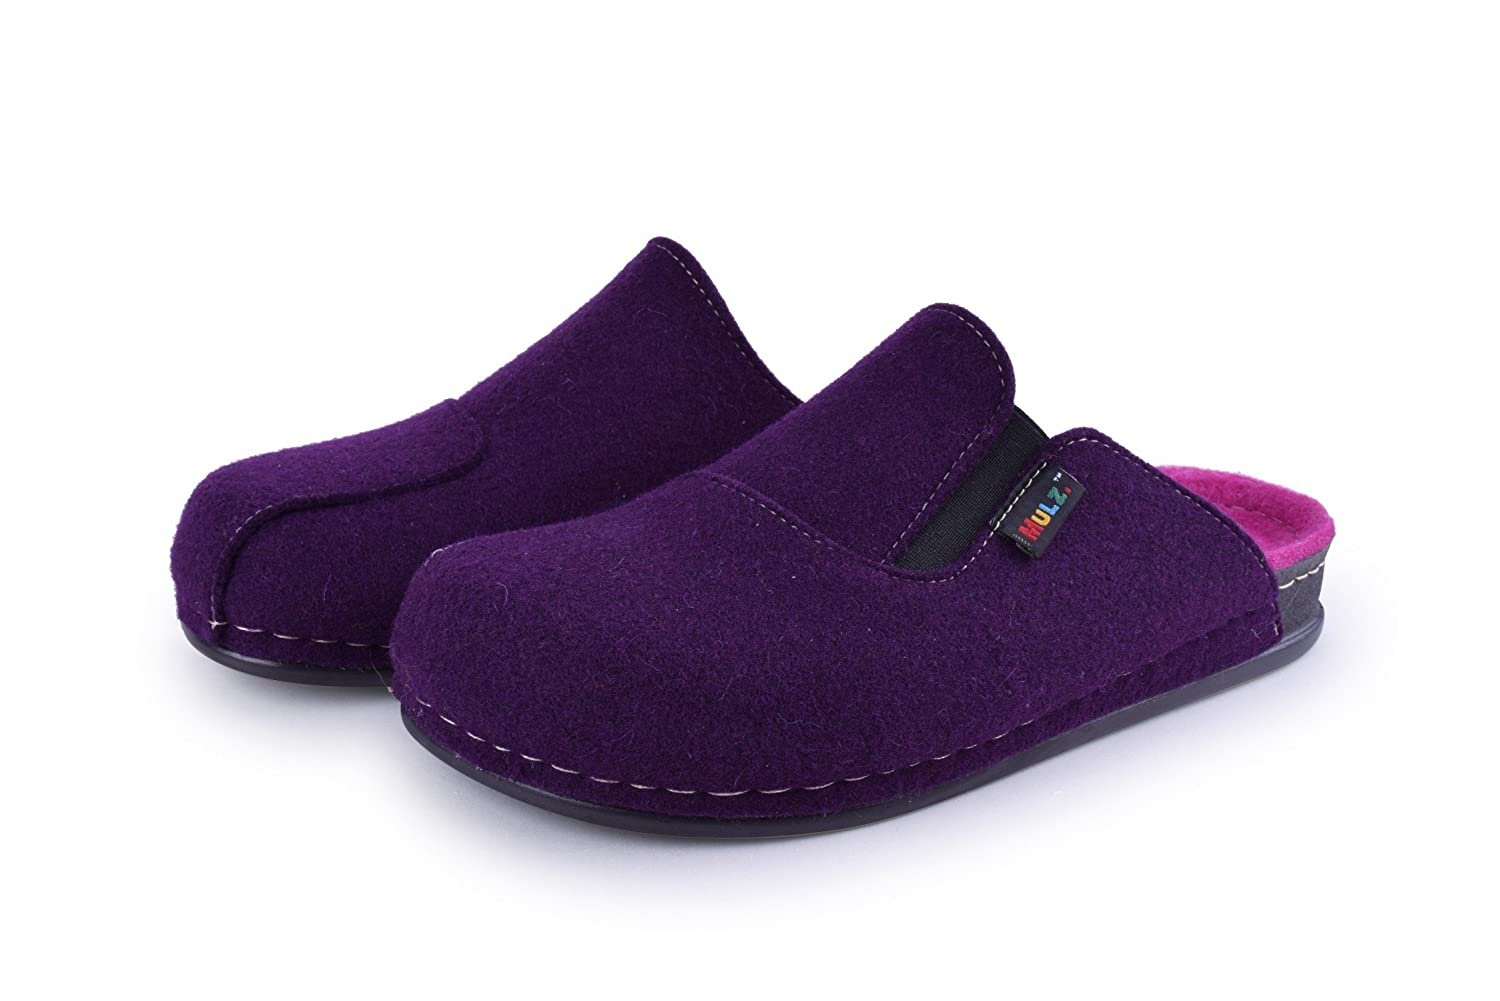 Mulz Size 6-13 Unisex House Shoes - Wool Indoor & Outdoor Slippers - Made in Europe B07BQL5FF2 8 (B)M US Women|Purple